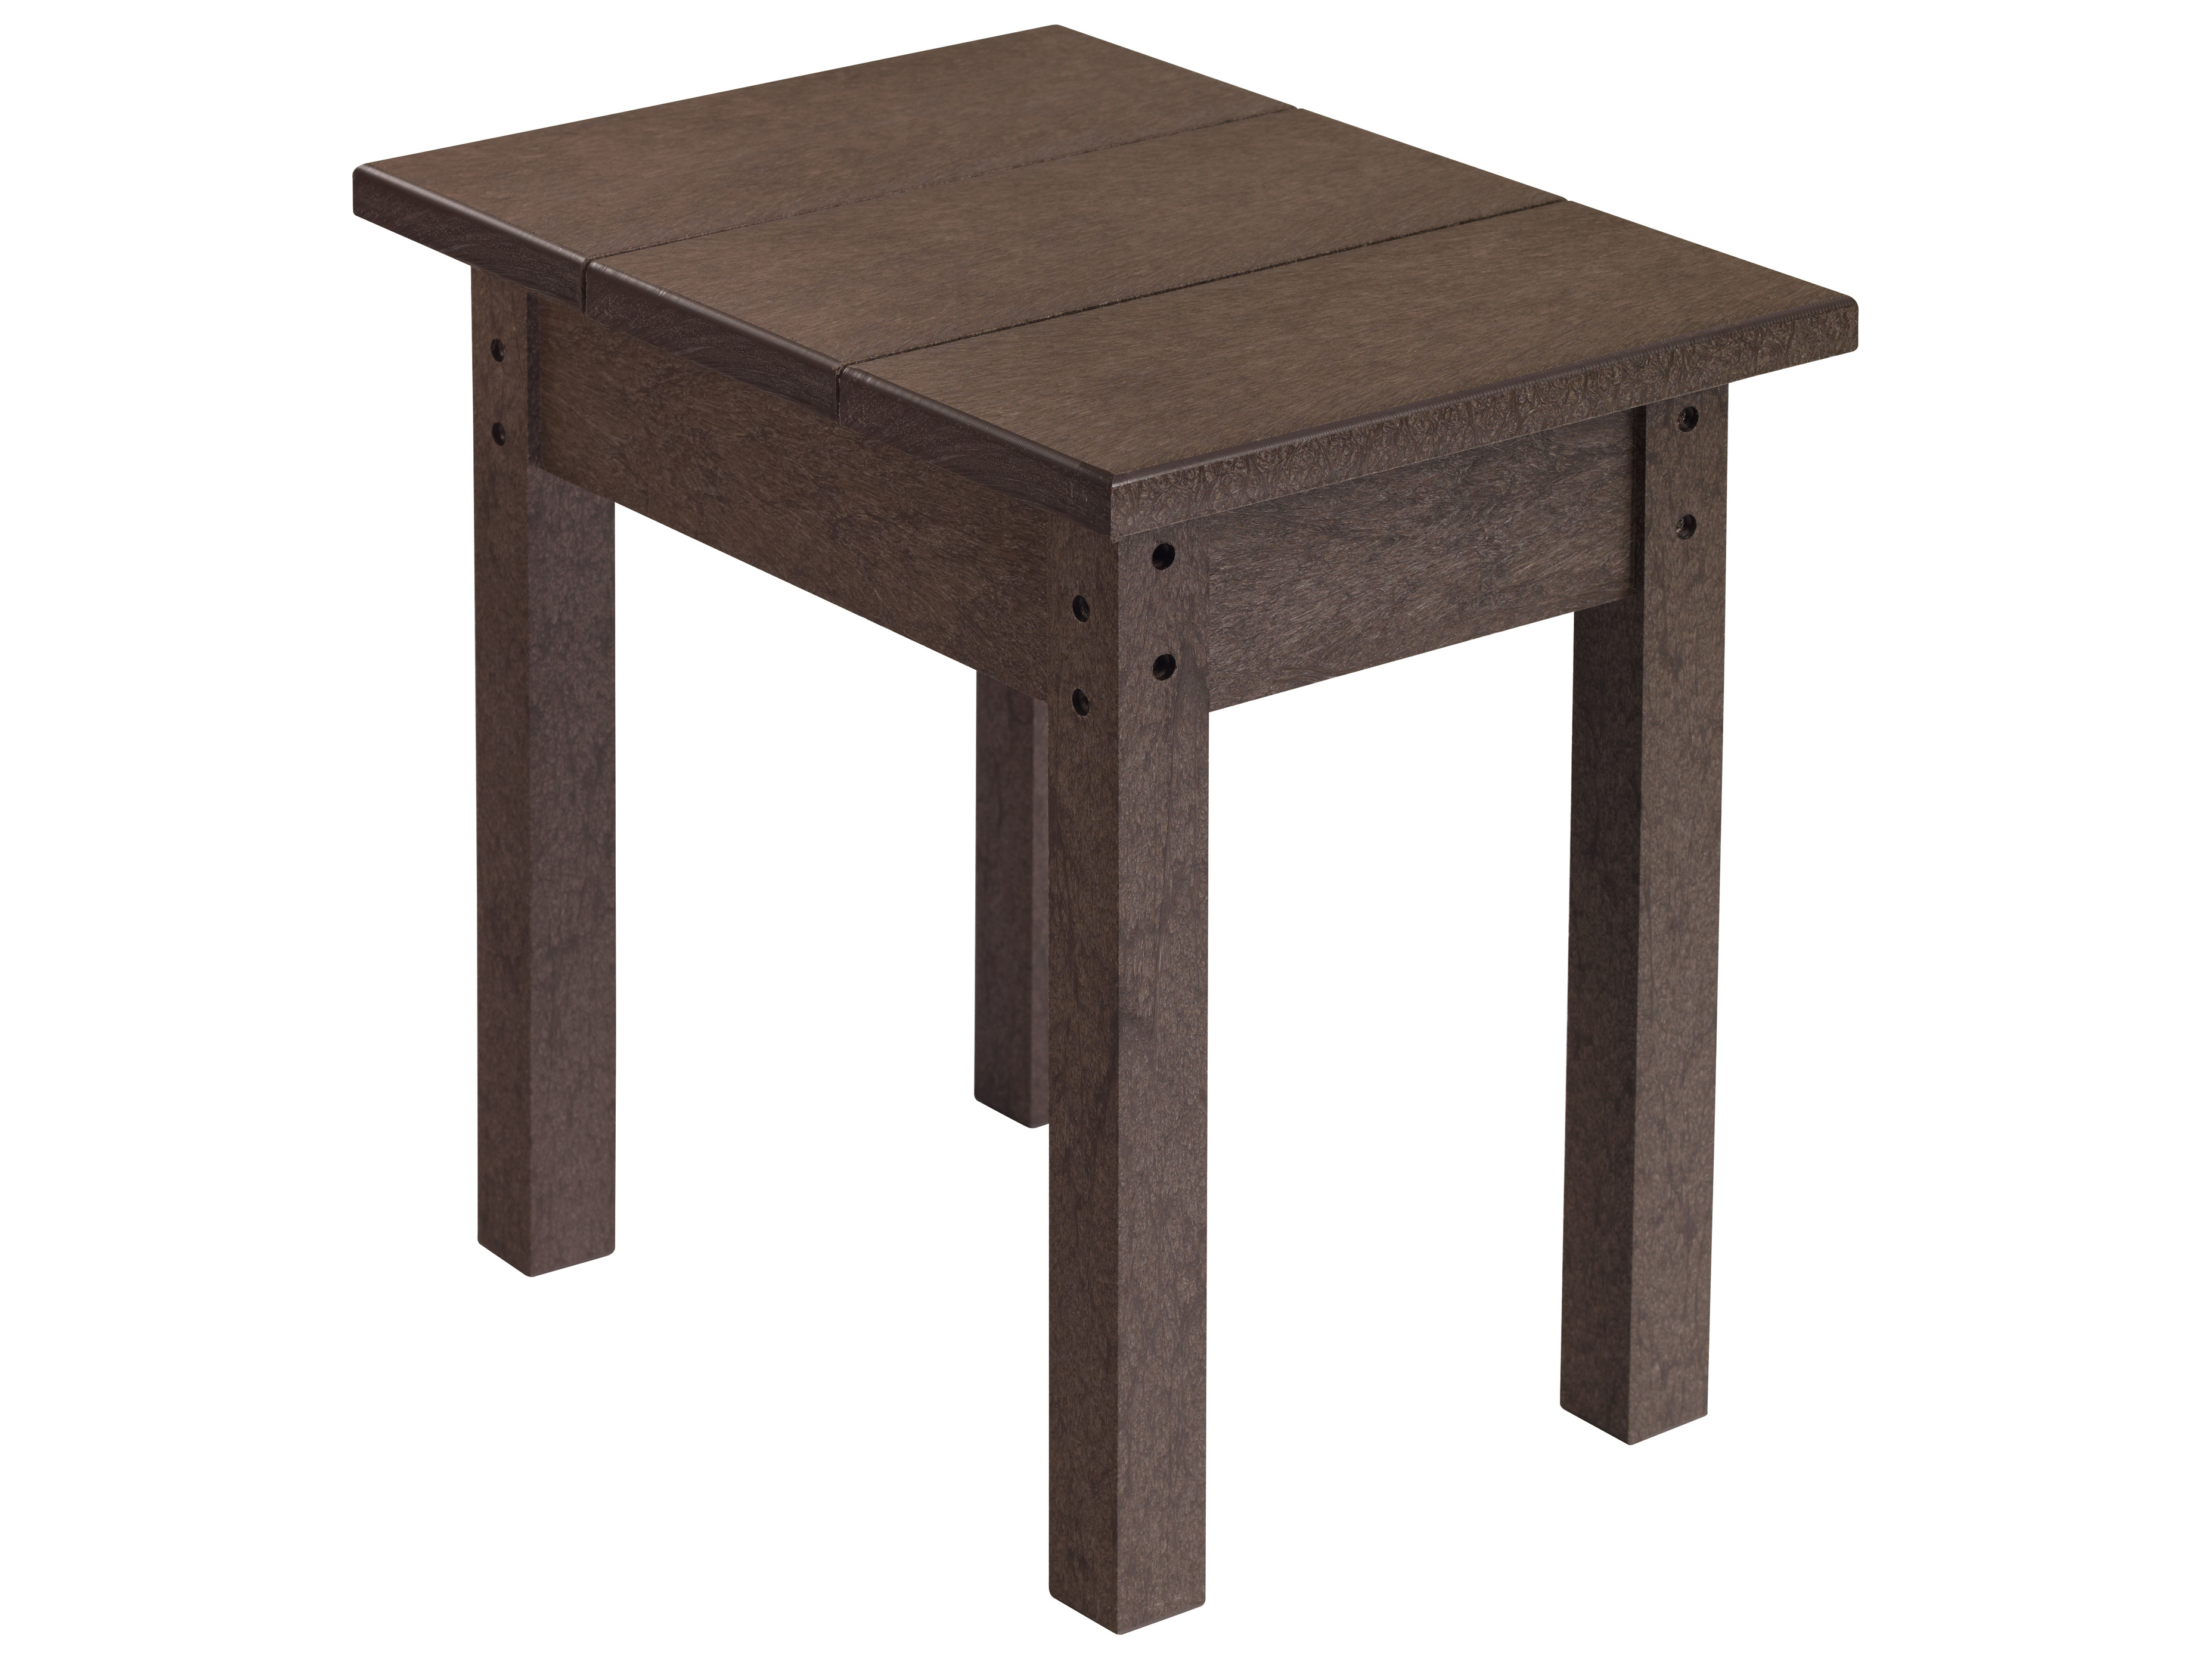 C R Plastic Generation Side Table T01